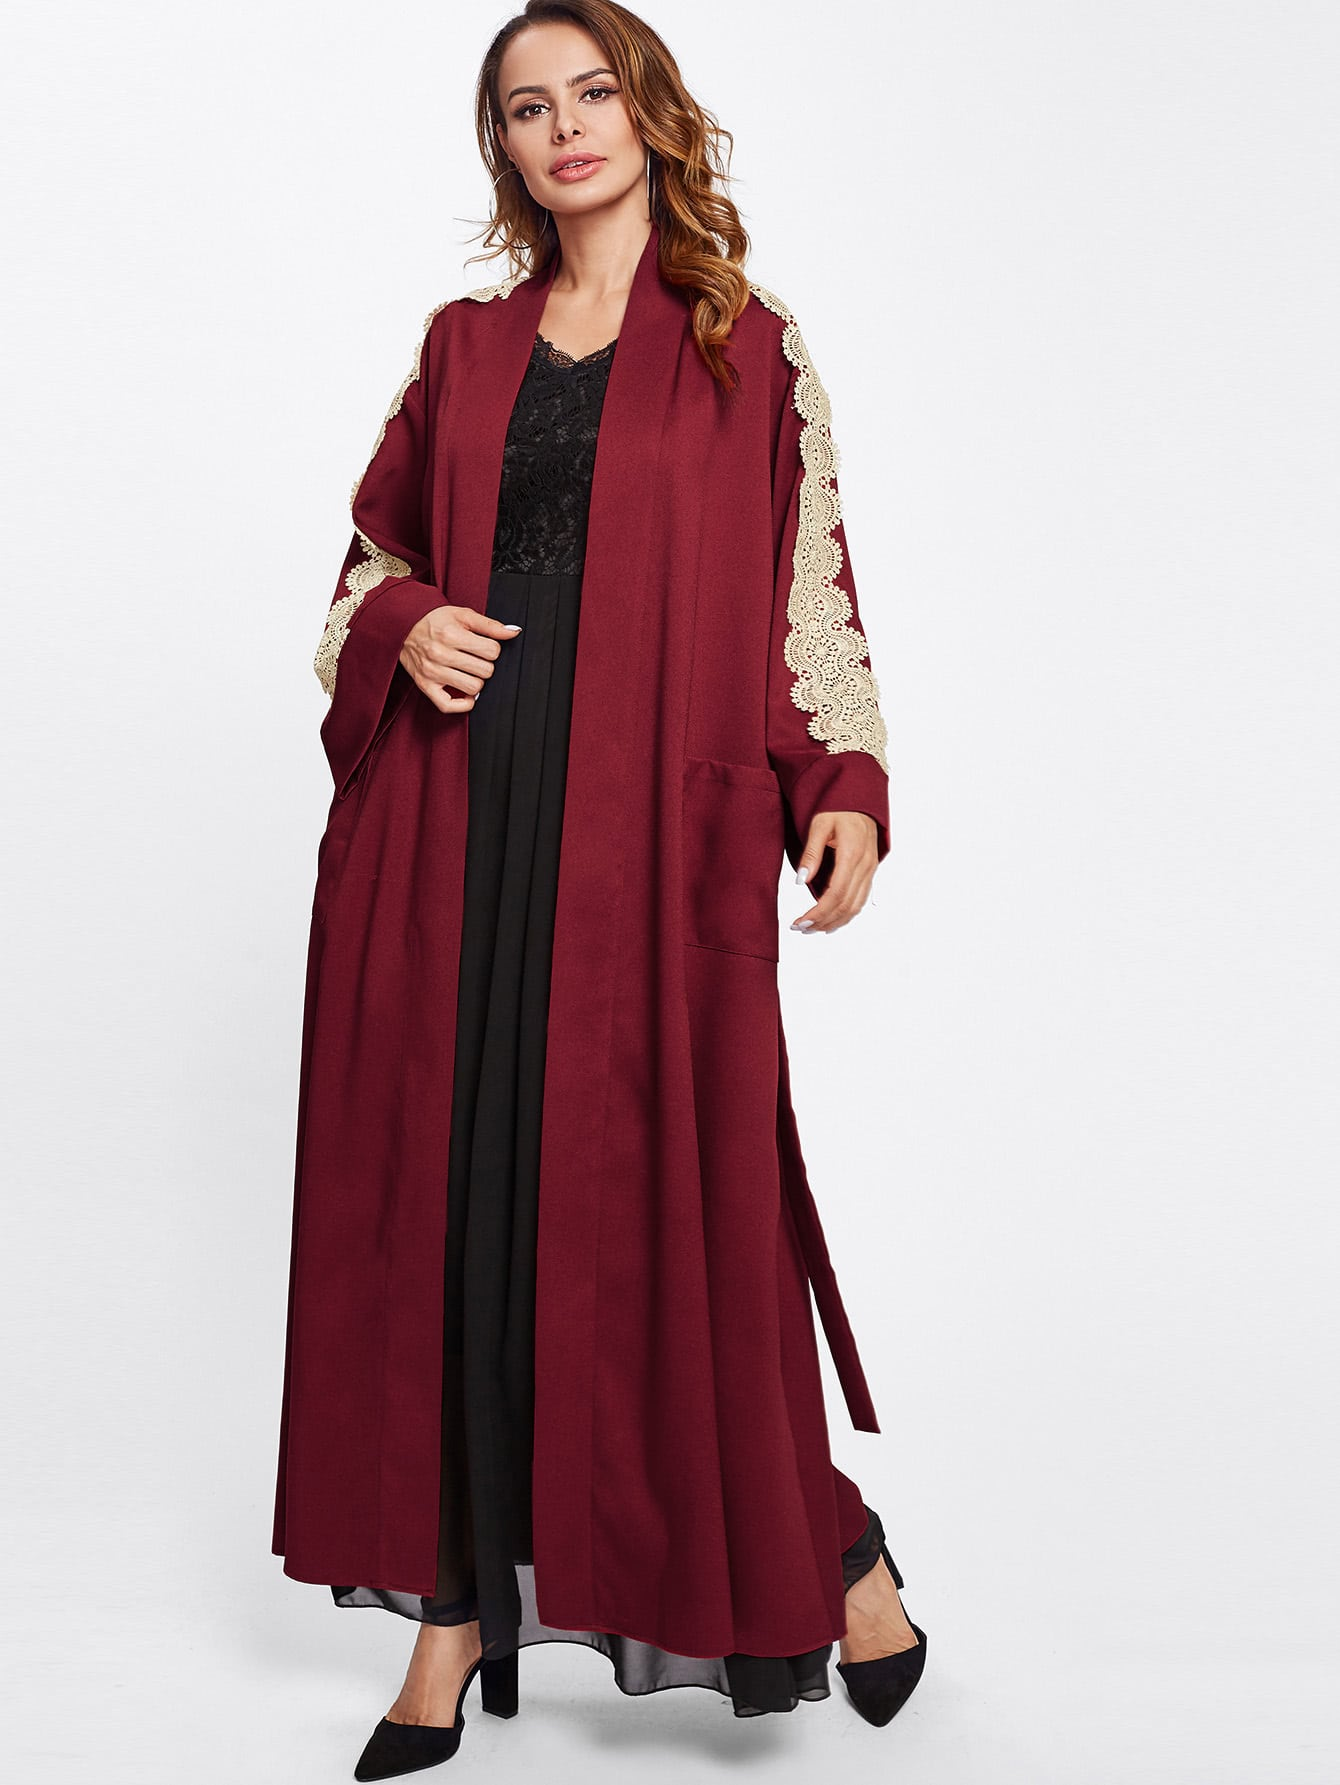 Pocket Front Contrast Lace Applique Wrap Abaya